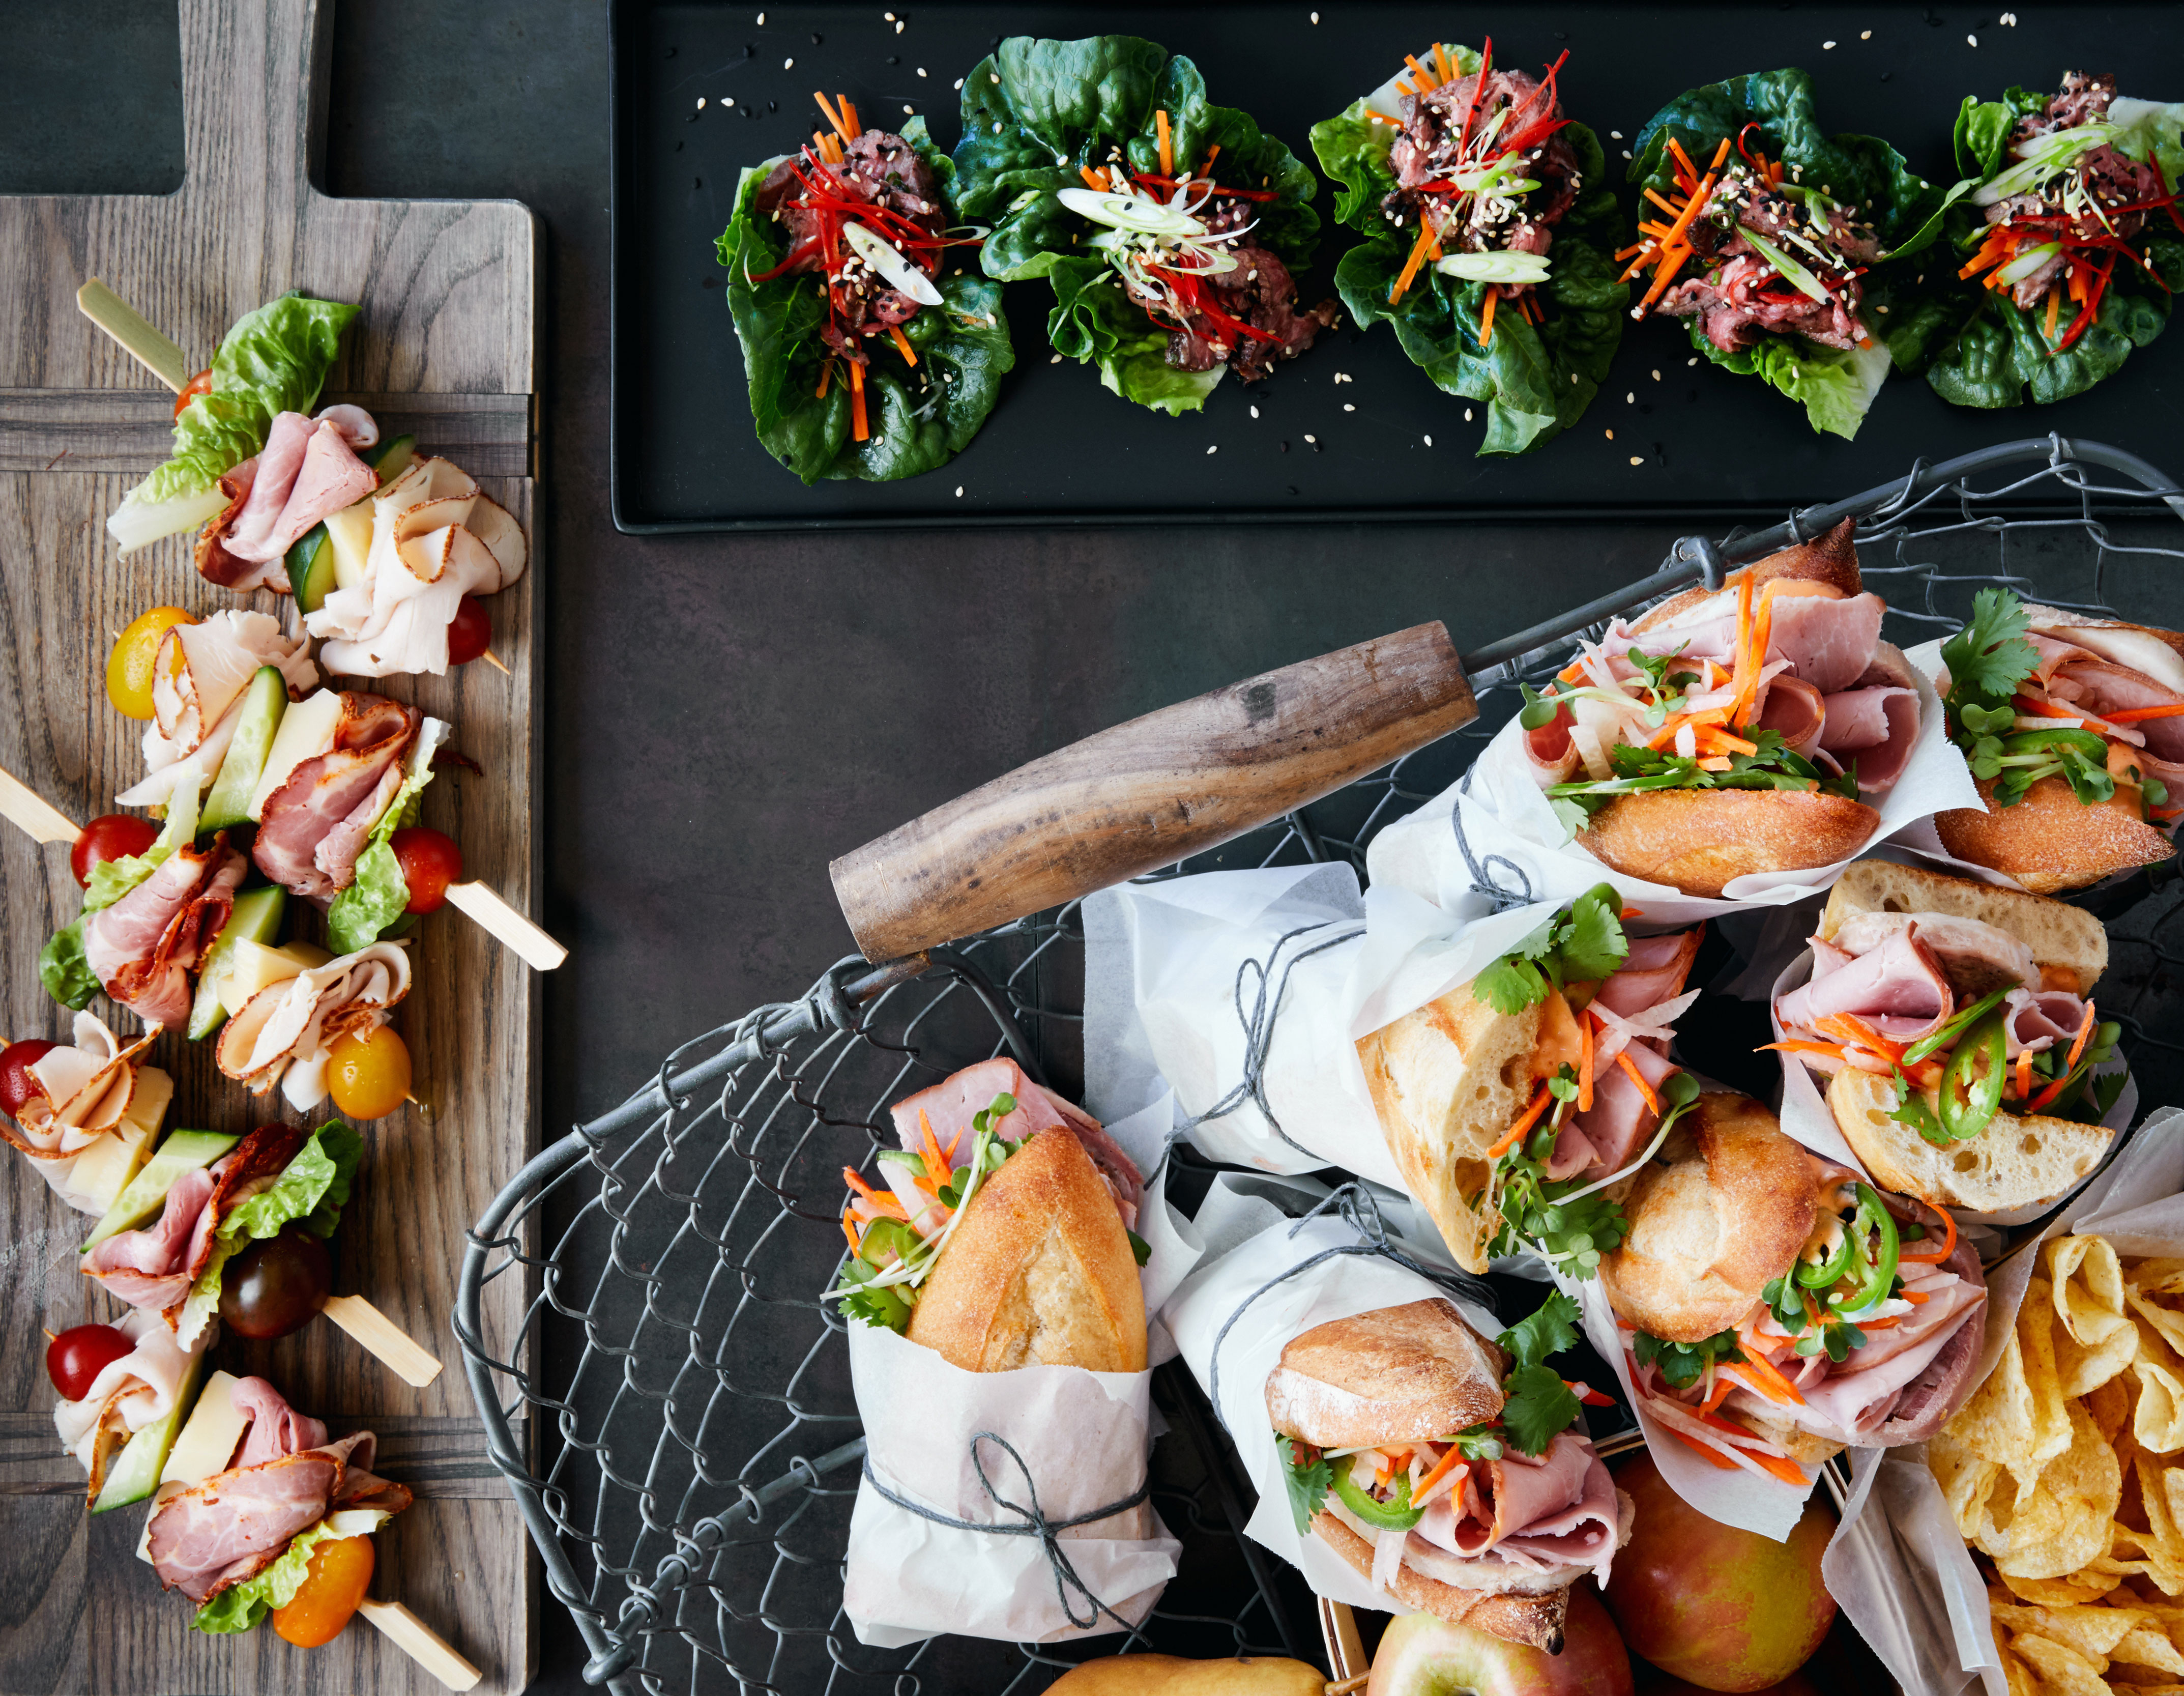 lunch arrangement display with assorted sandwiches